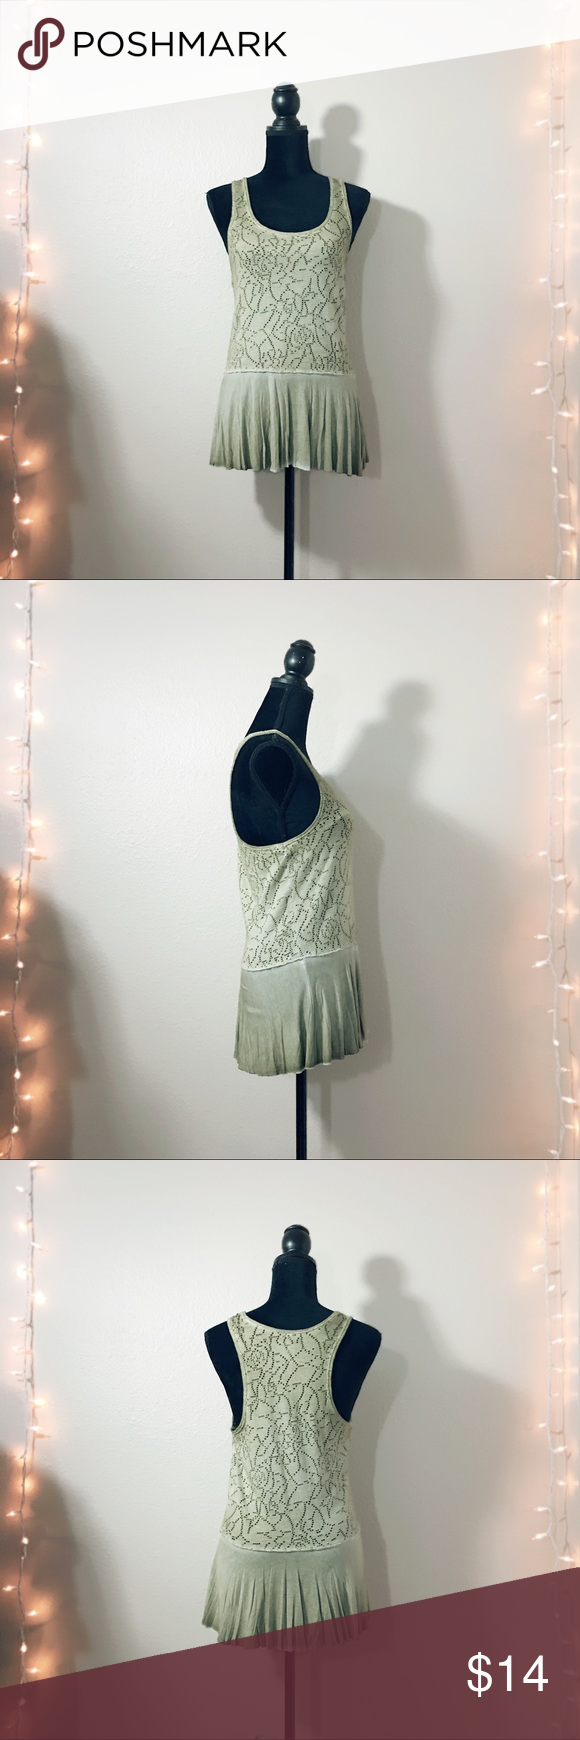 🆕 FREE PEOPLE Olive skirted Tank Beautiful open Knit skirted Tank from Free People! Flattering olive color. Excellent condition! Free People Tops Tank Tops